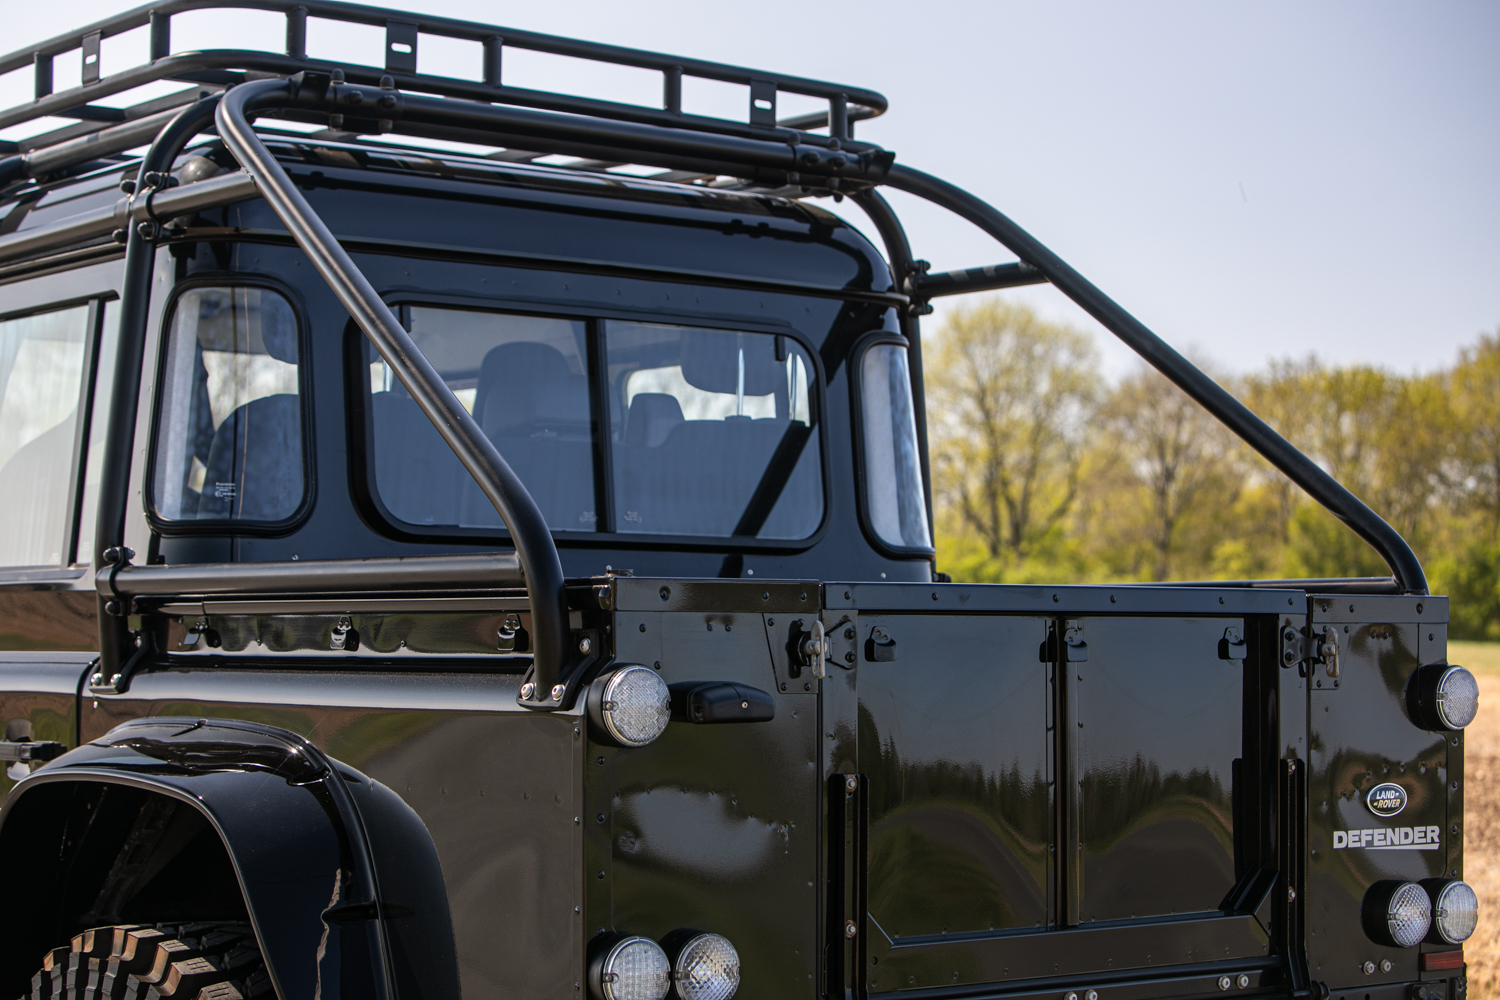 2015 Land Rover Defender 110 SVX 'Spectre' JB24 - Image 25 of 26